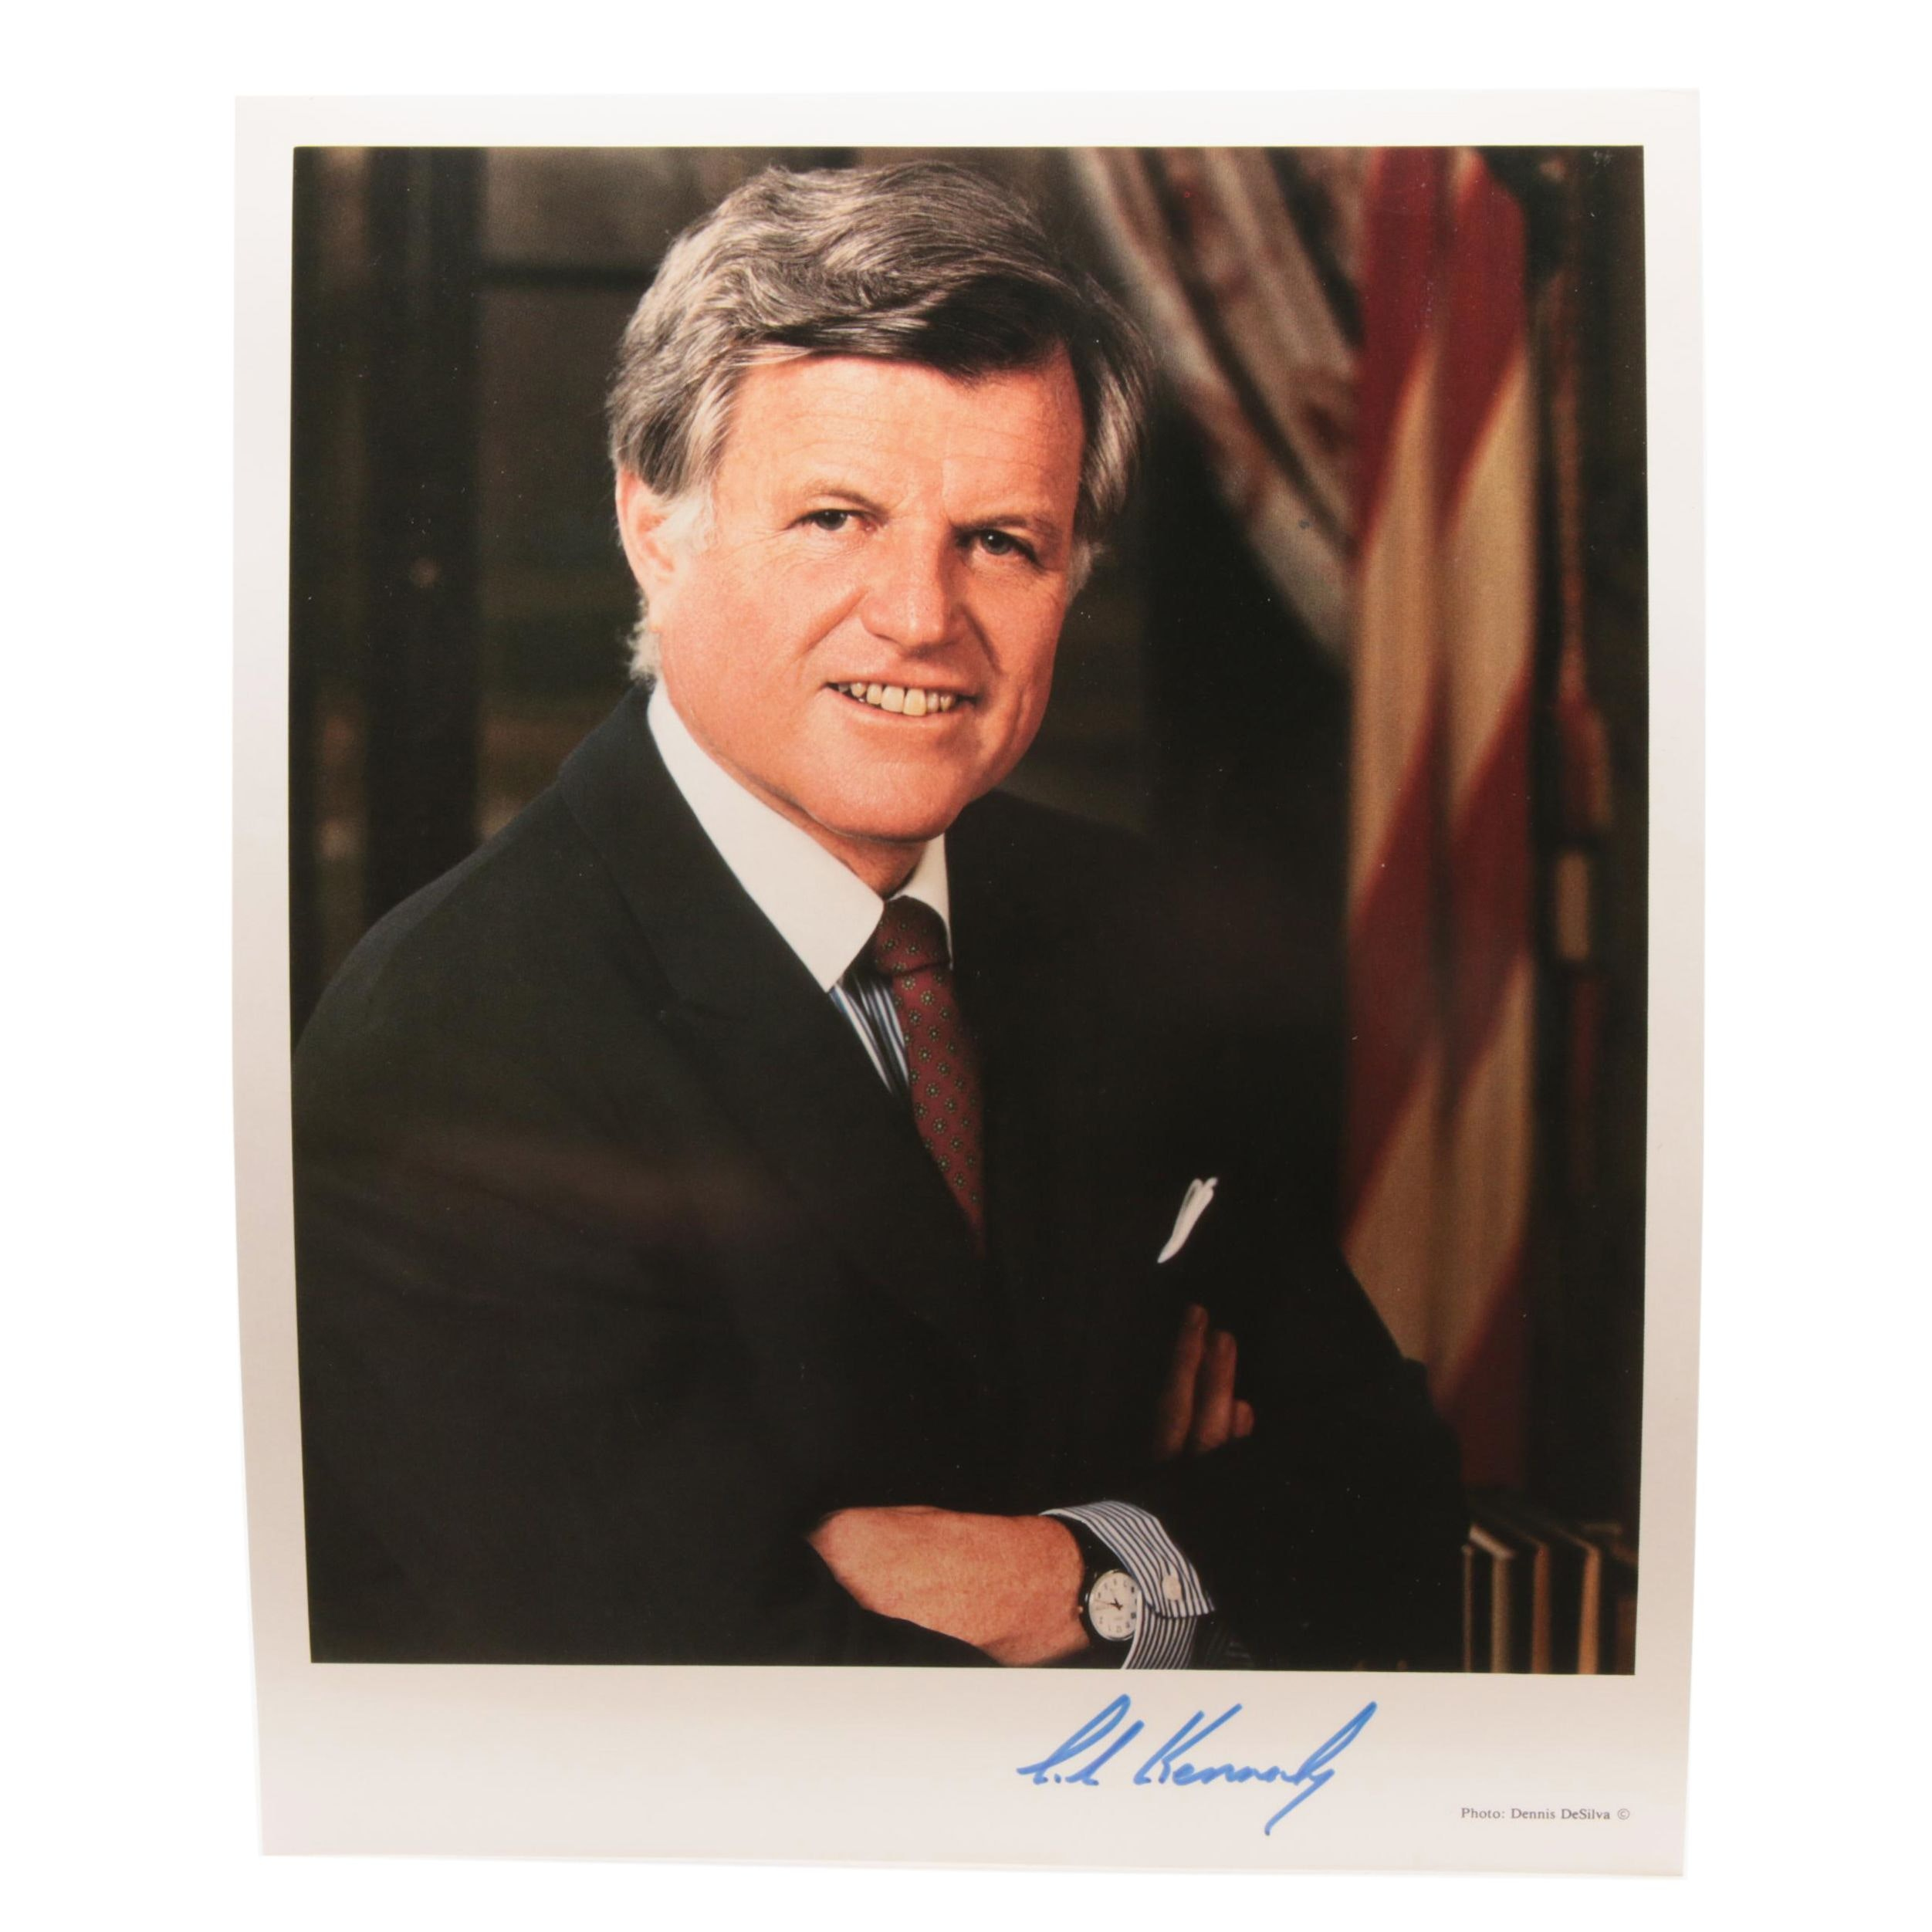 Ted Kennedy Signed Political Photo Print